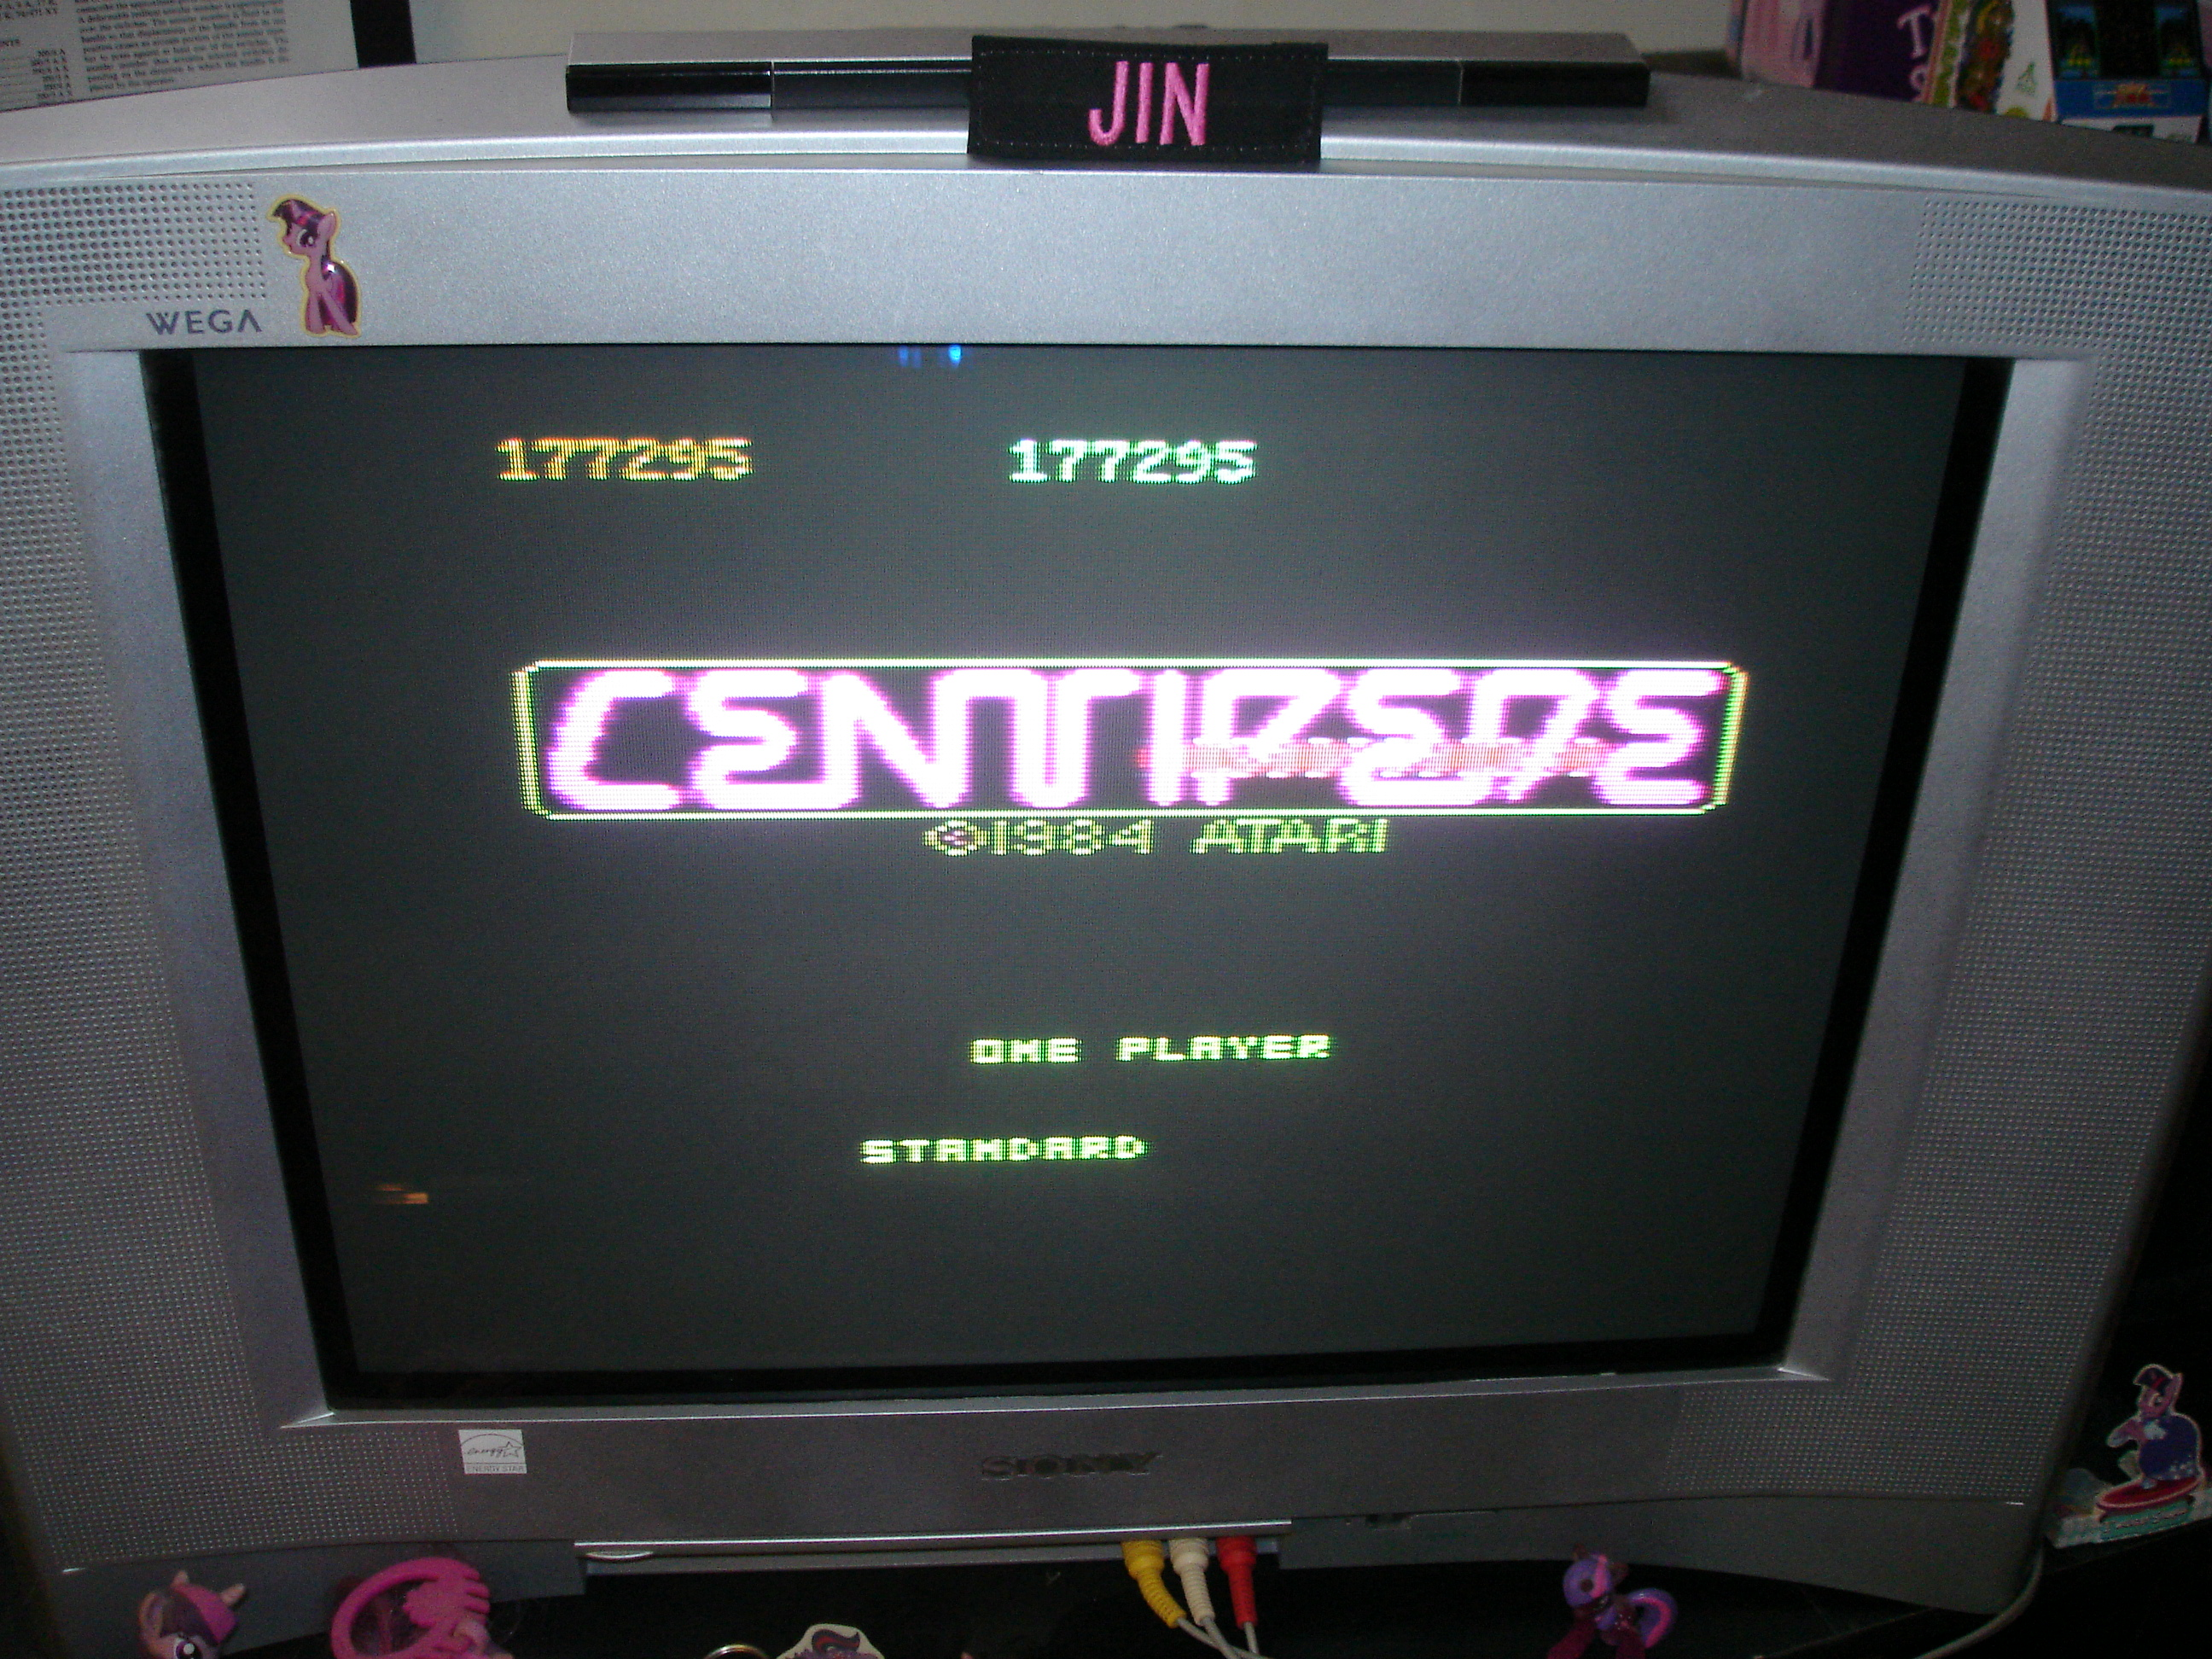 Centipede: Standard 177,295 points